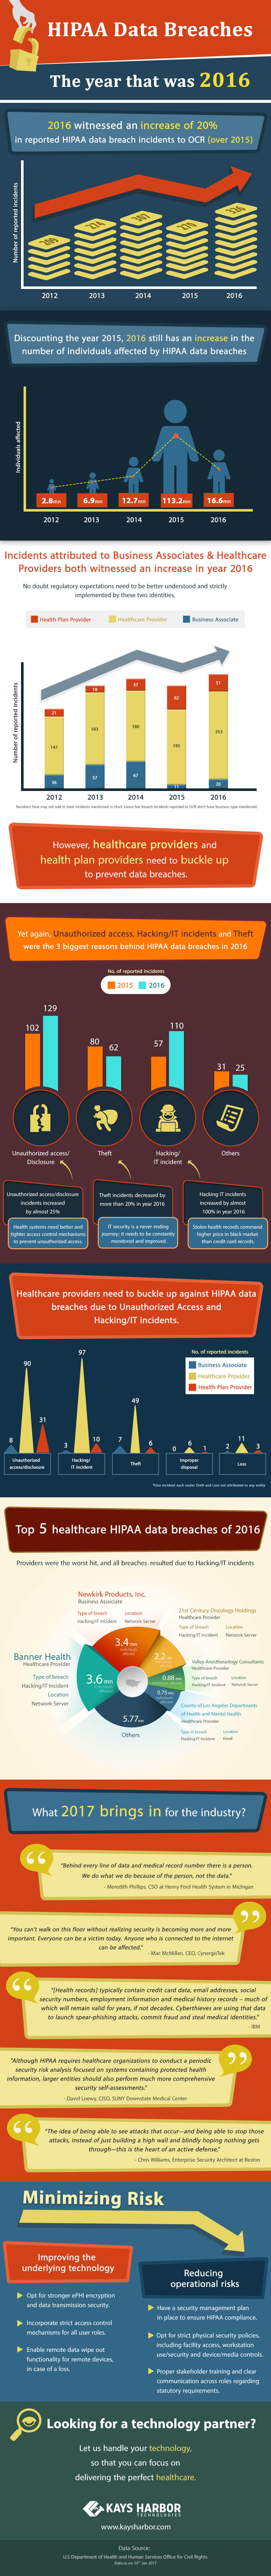 Healthcare Data Breaches in 2016